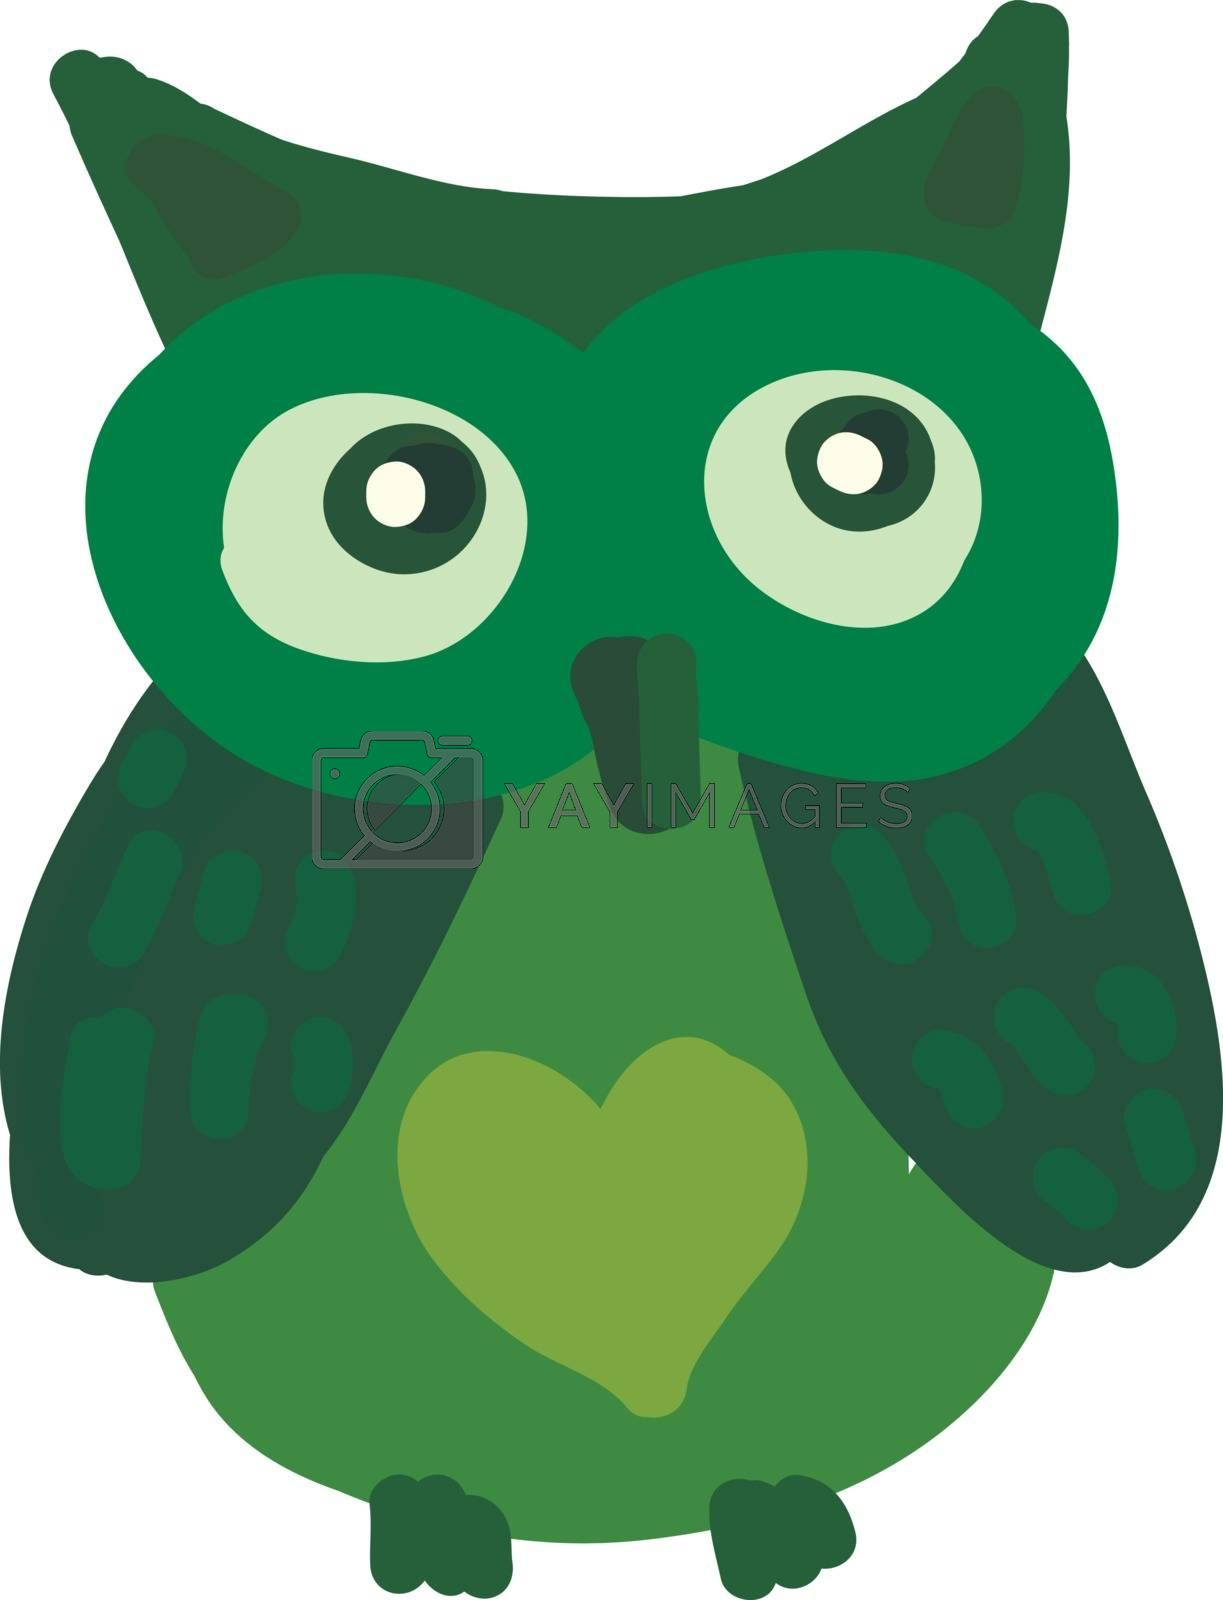 An image of a green owl with a heart drawn on its stomach vector color drawing or illustration